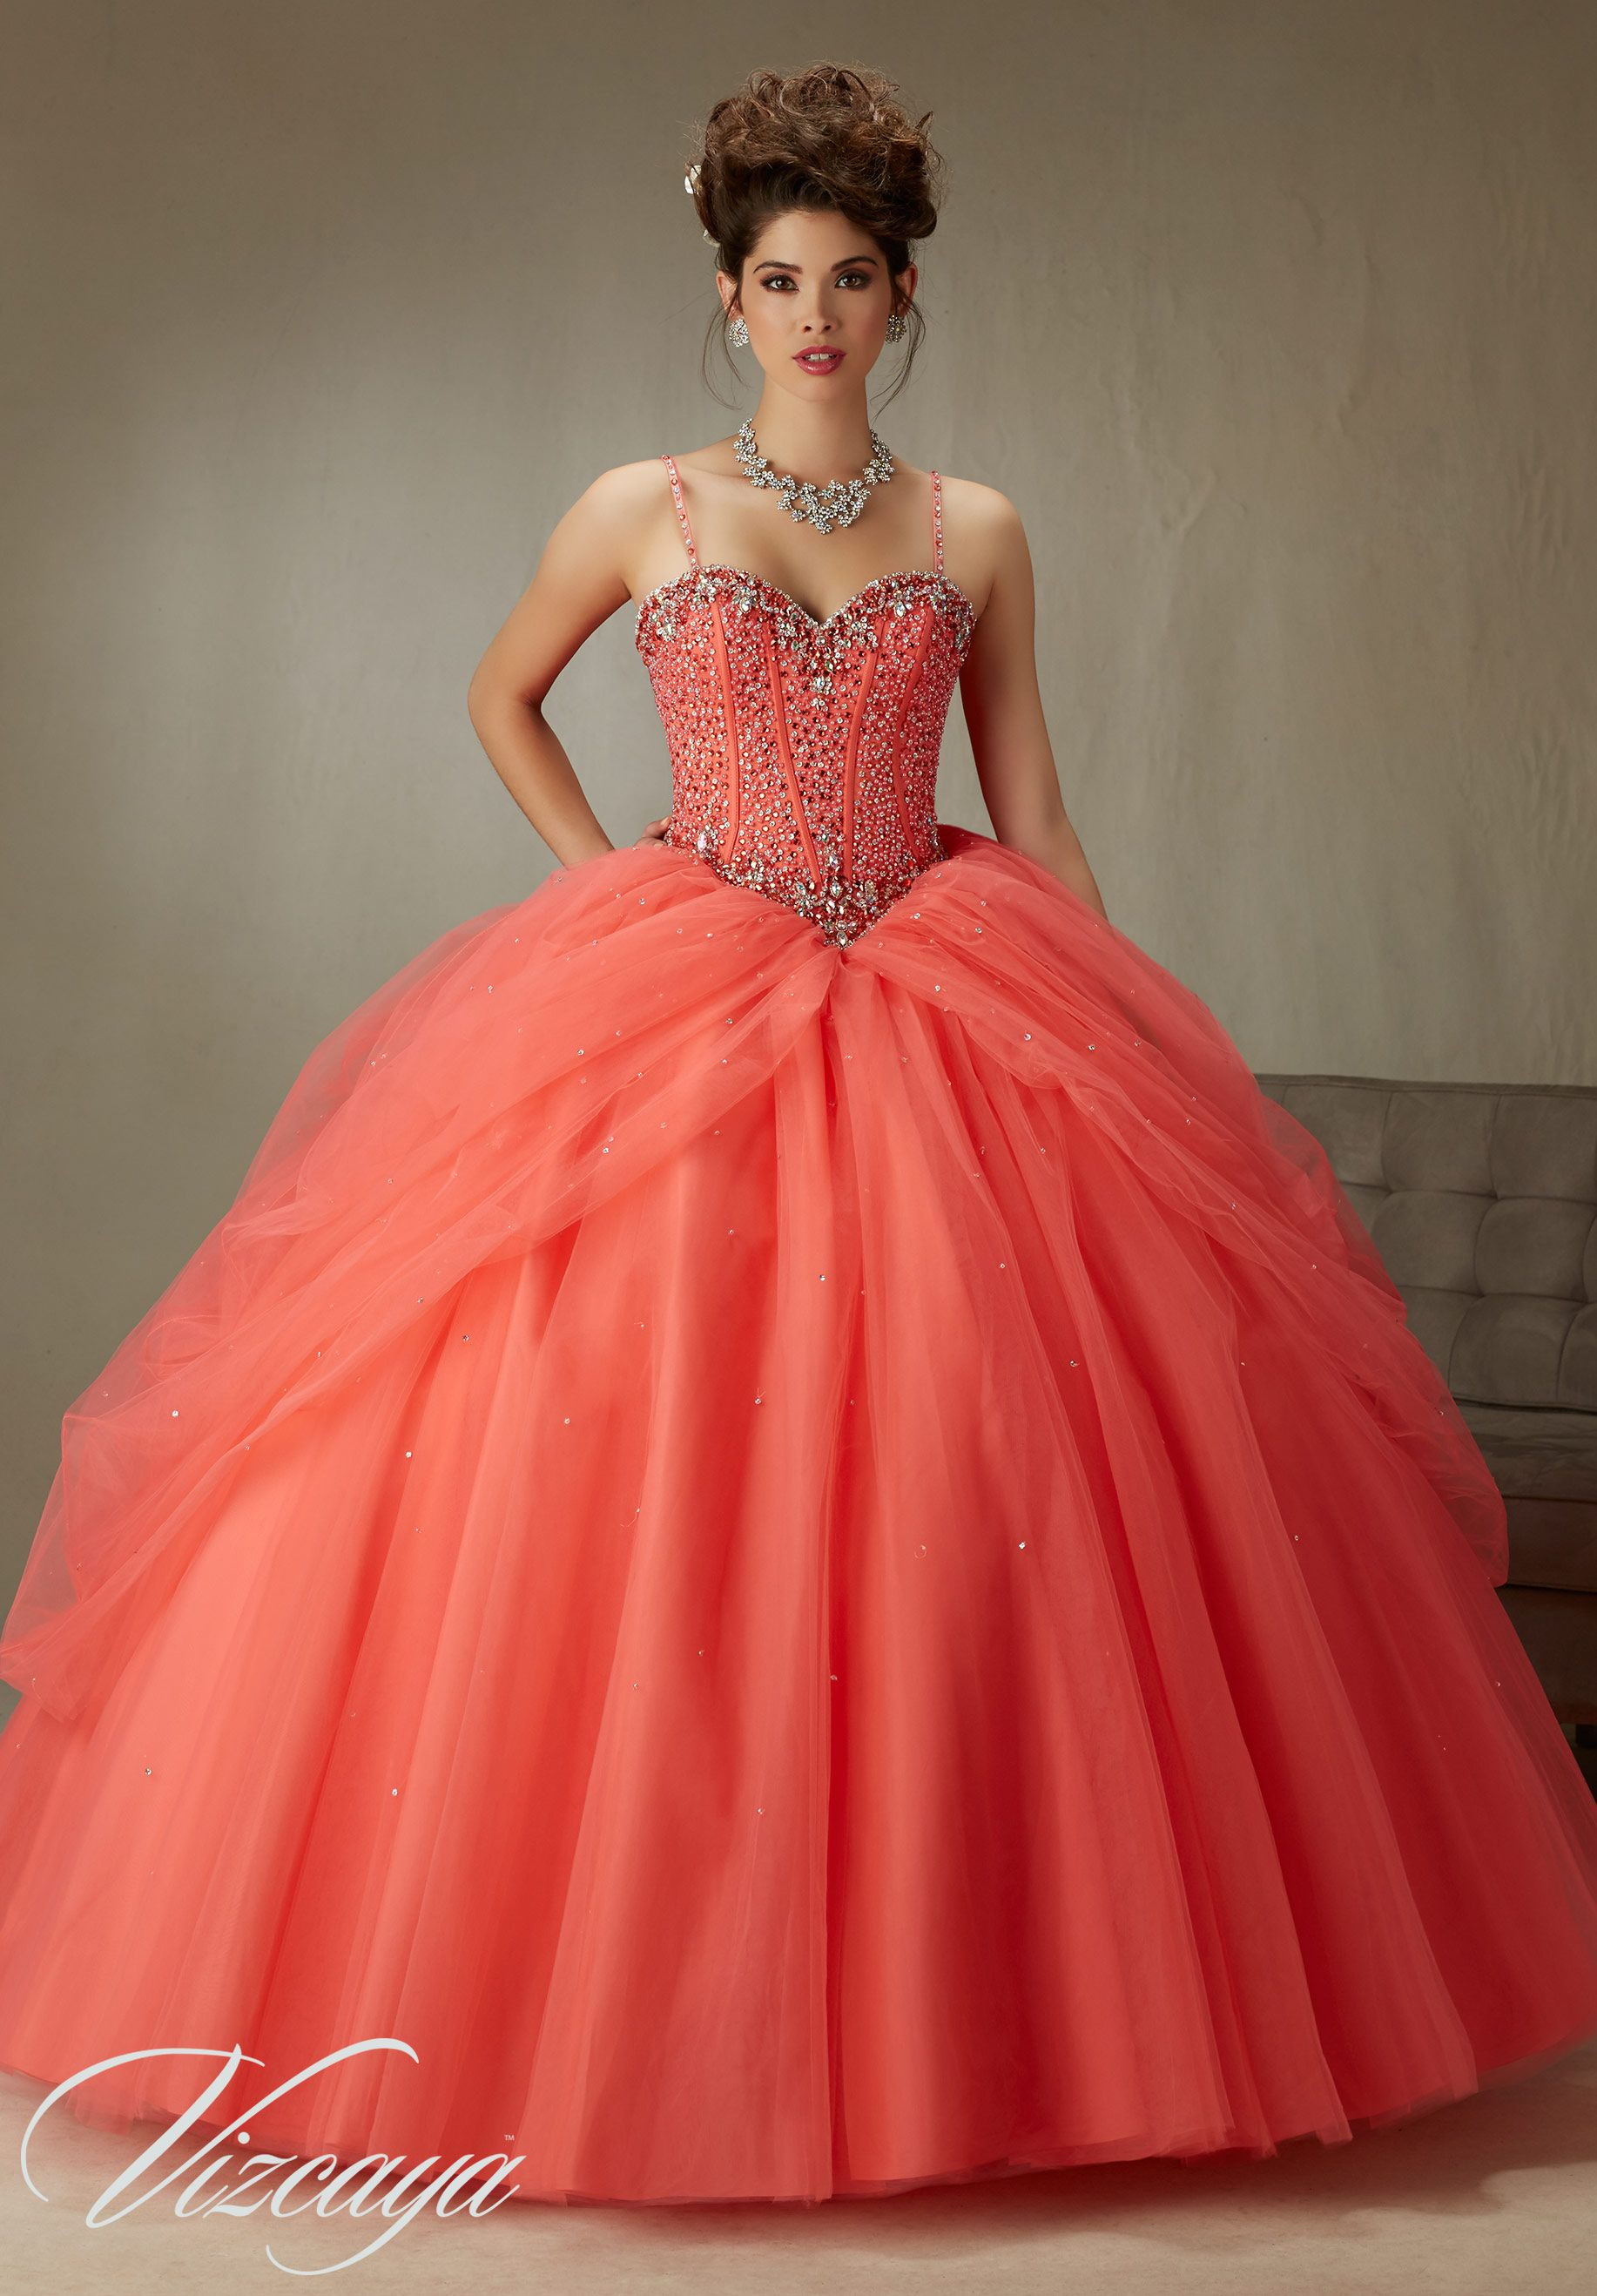 Quinceanera dresses by Vizcaya Beaded, Boned Corset Bodice on a ...